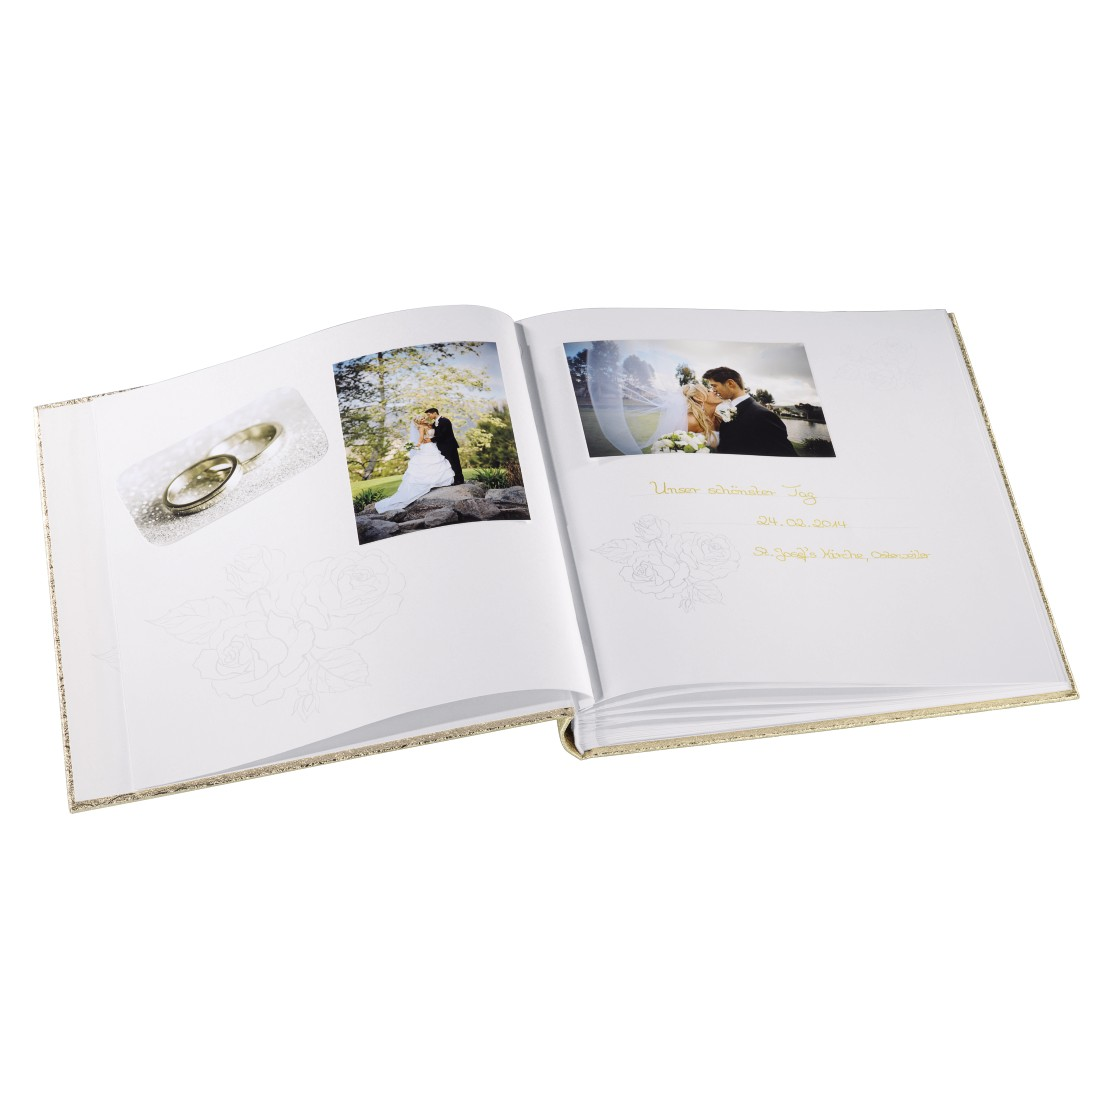 awx2 High-Res Appliance 2 - Hama, Album photo livre Caracas, 29x32 cm, 50 white pages, doré